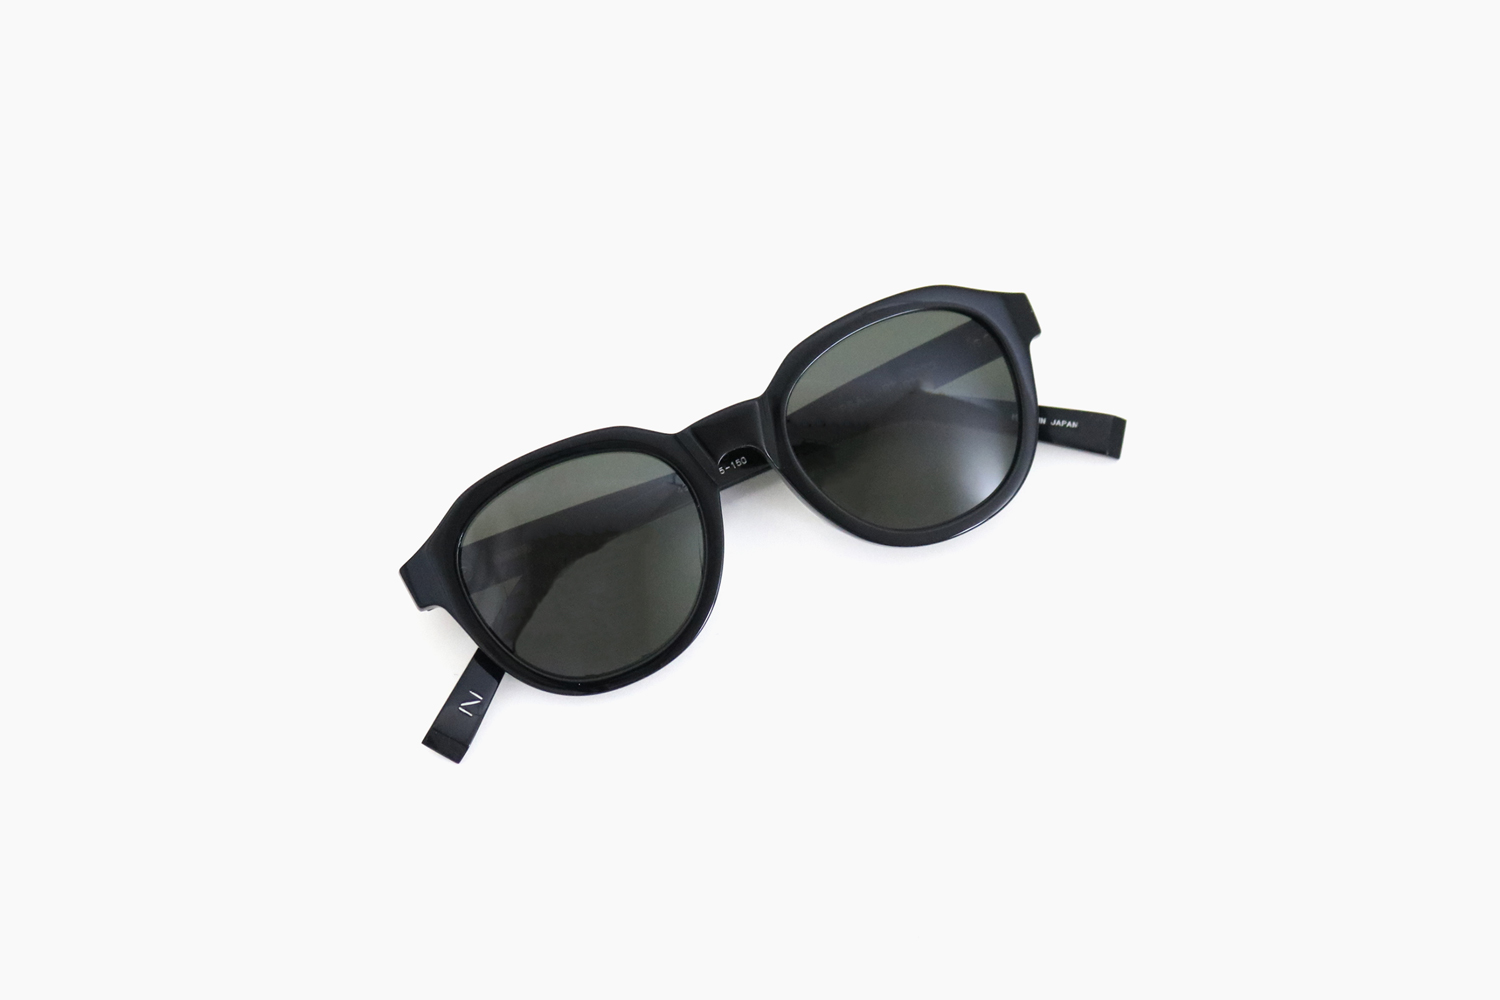 UNIVERSAL PRODUCTS. + Noritake x tpr - tpr-006 - Black SG The PARKSIDE ROOM